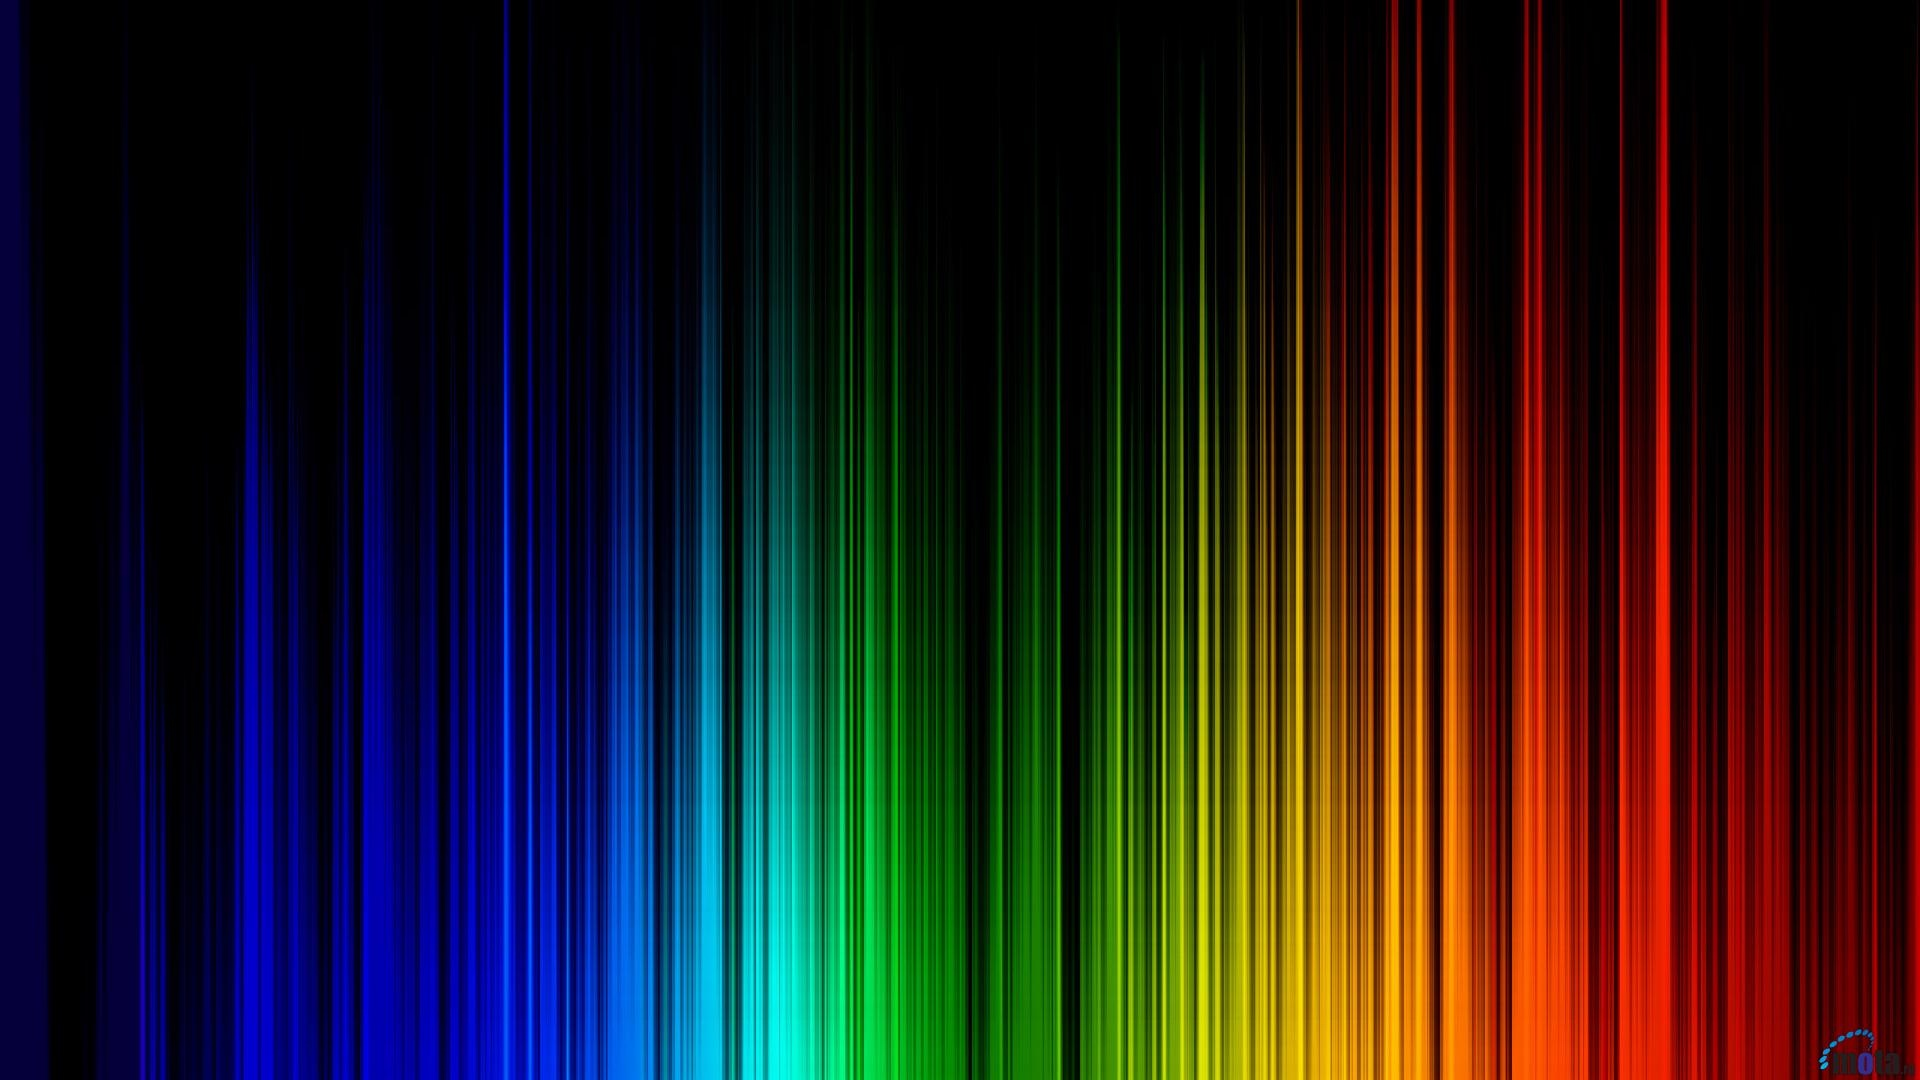 Rainbow Colors Background Wallpaper 1920x1080